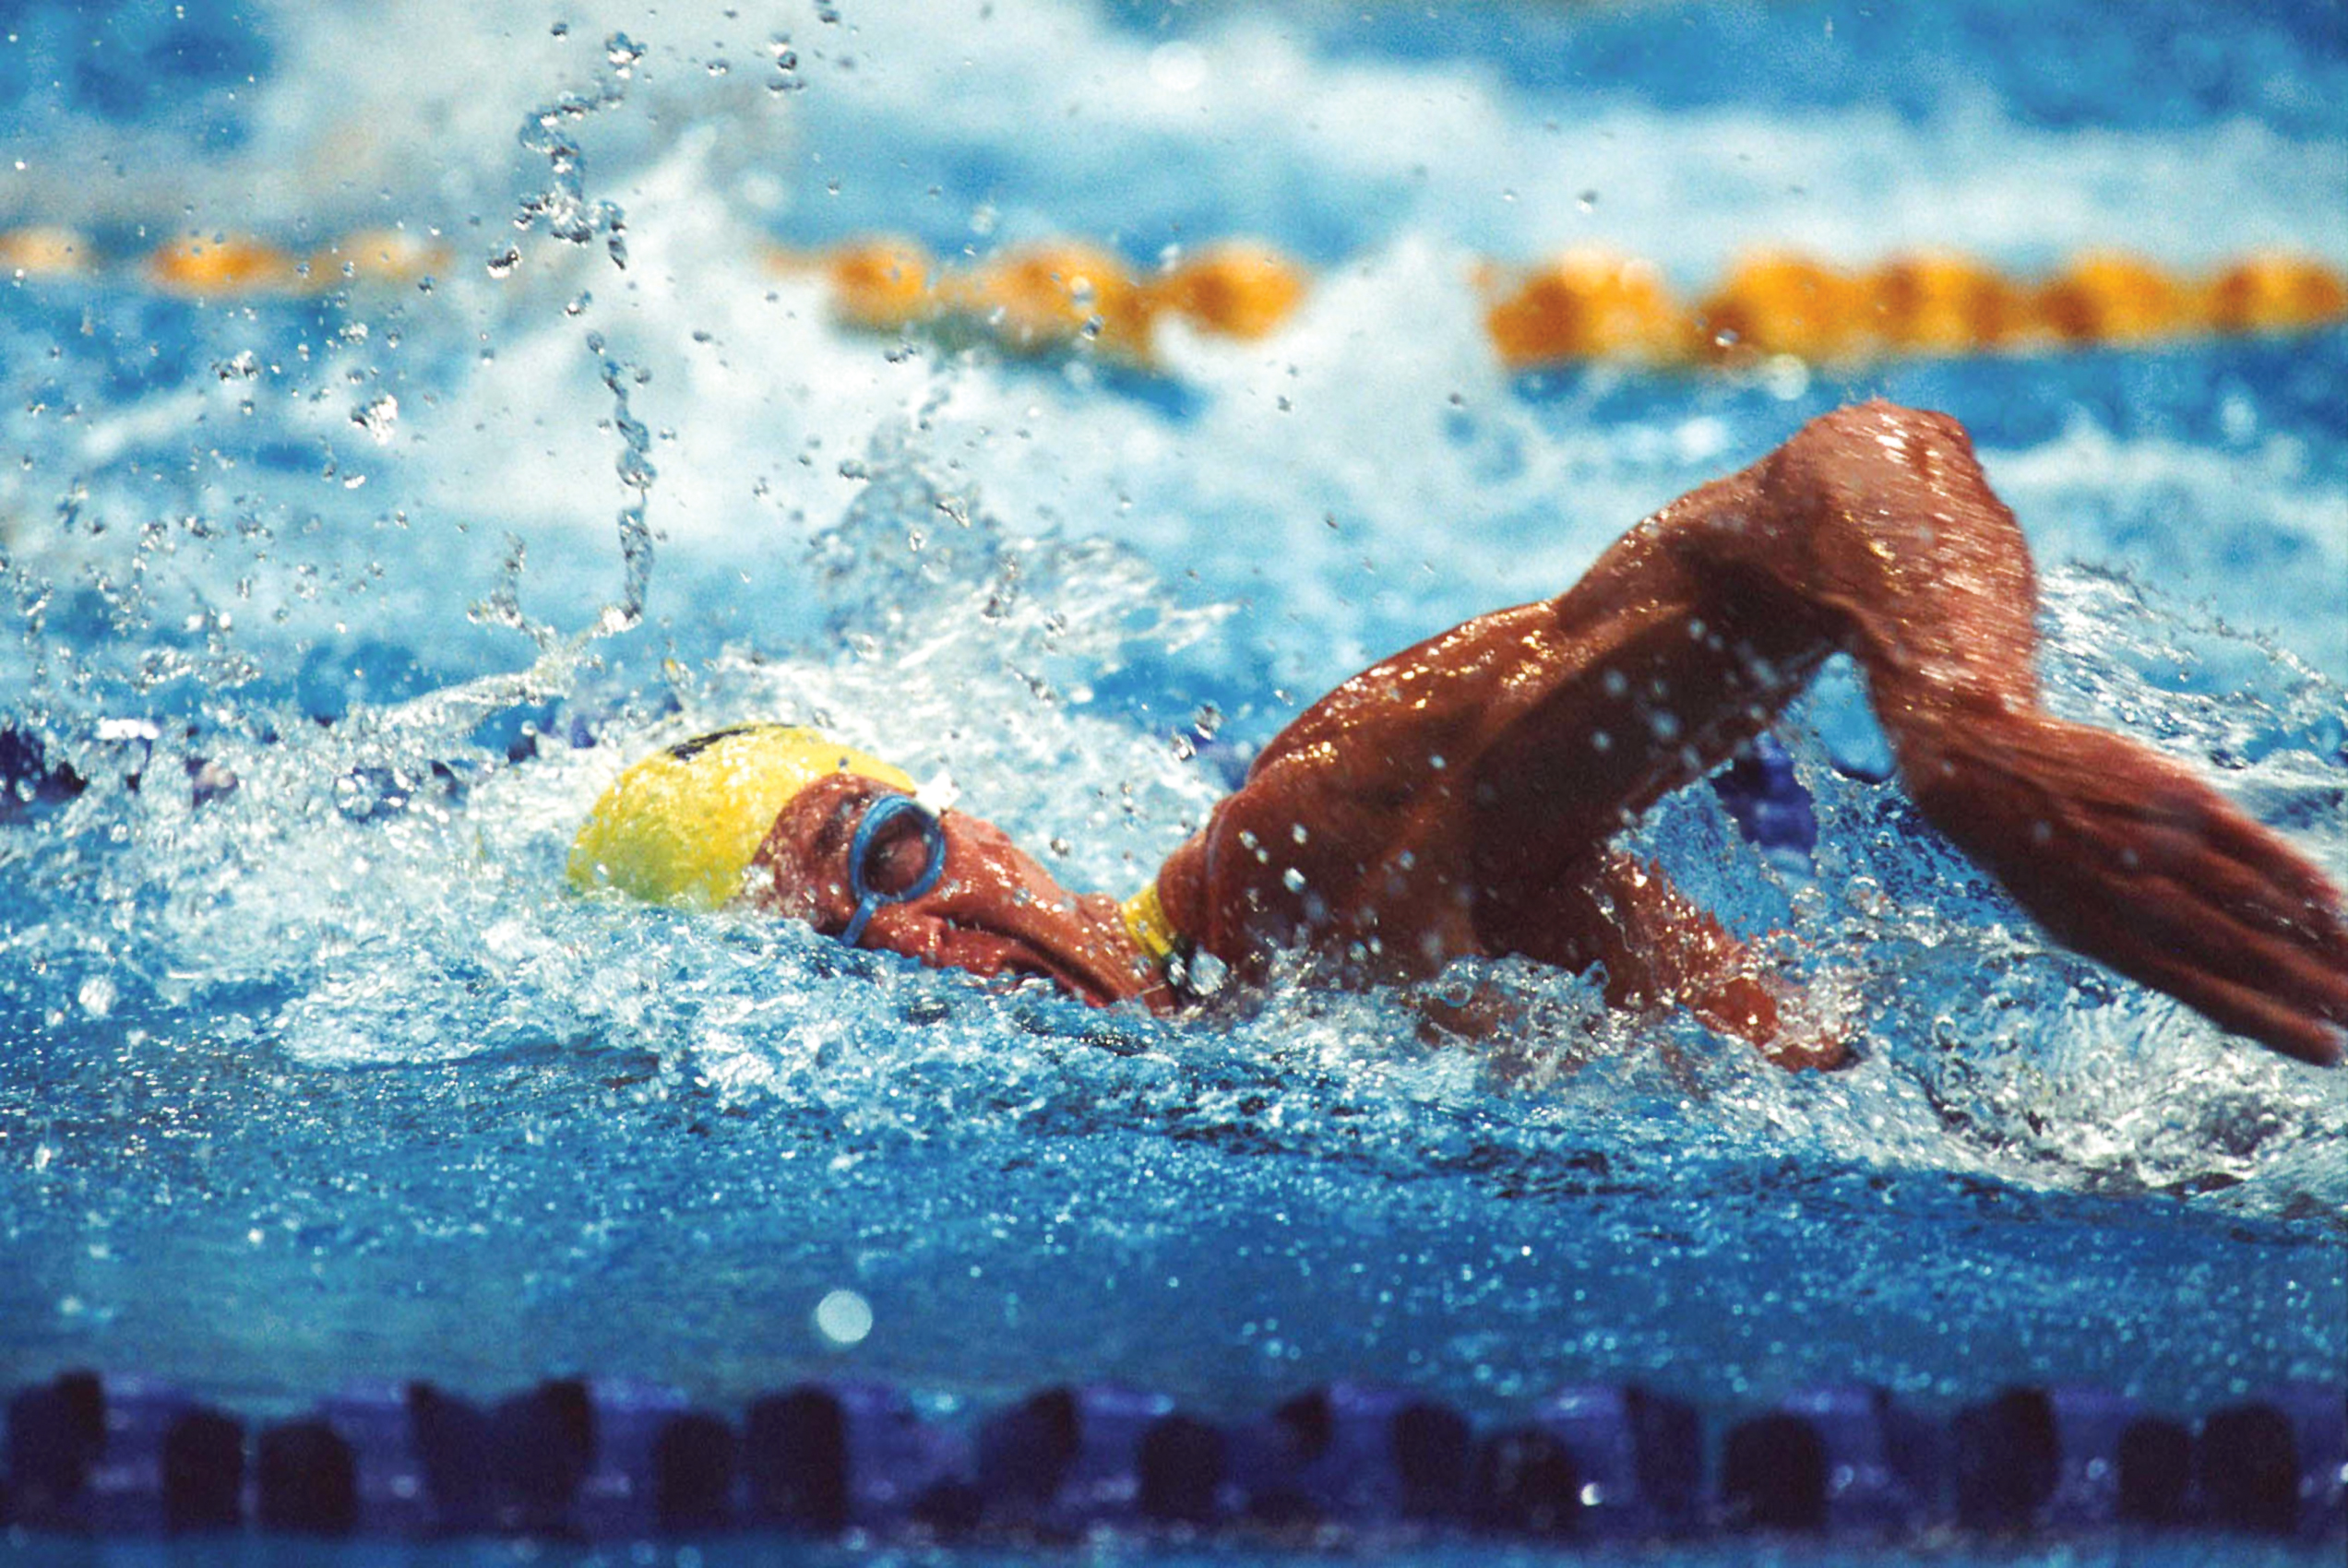 © Sport the library/Bill Bachman Sydney 2000 Paralympic Games Swimming - Action shot of Jeff Hardy (AUS) in the pool (freestyle) as he takes a breath. Event unknown.